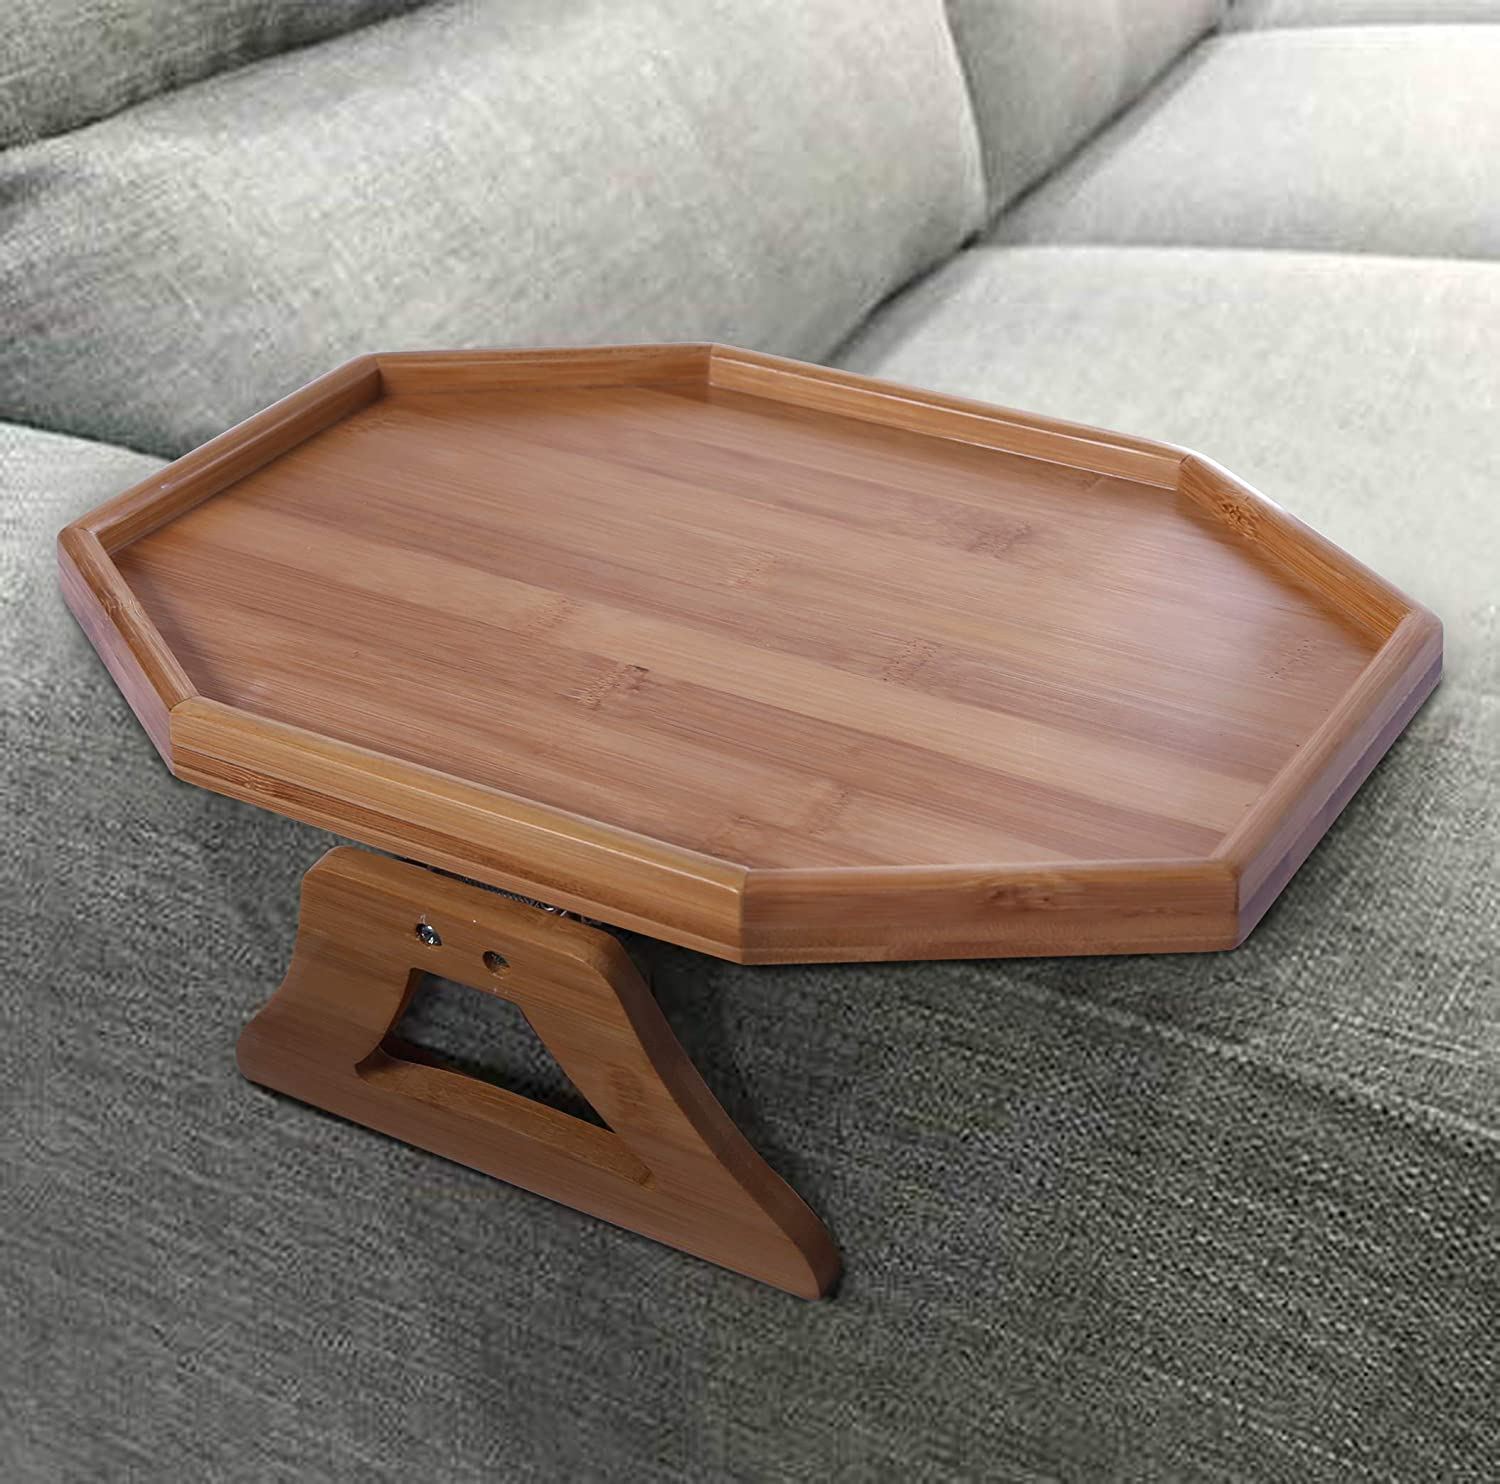 Natural Bamboo Sofa Armrest Clip-On Table, Ideal for Remote/Drinks/Phone